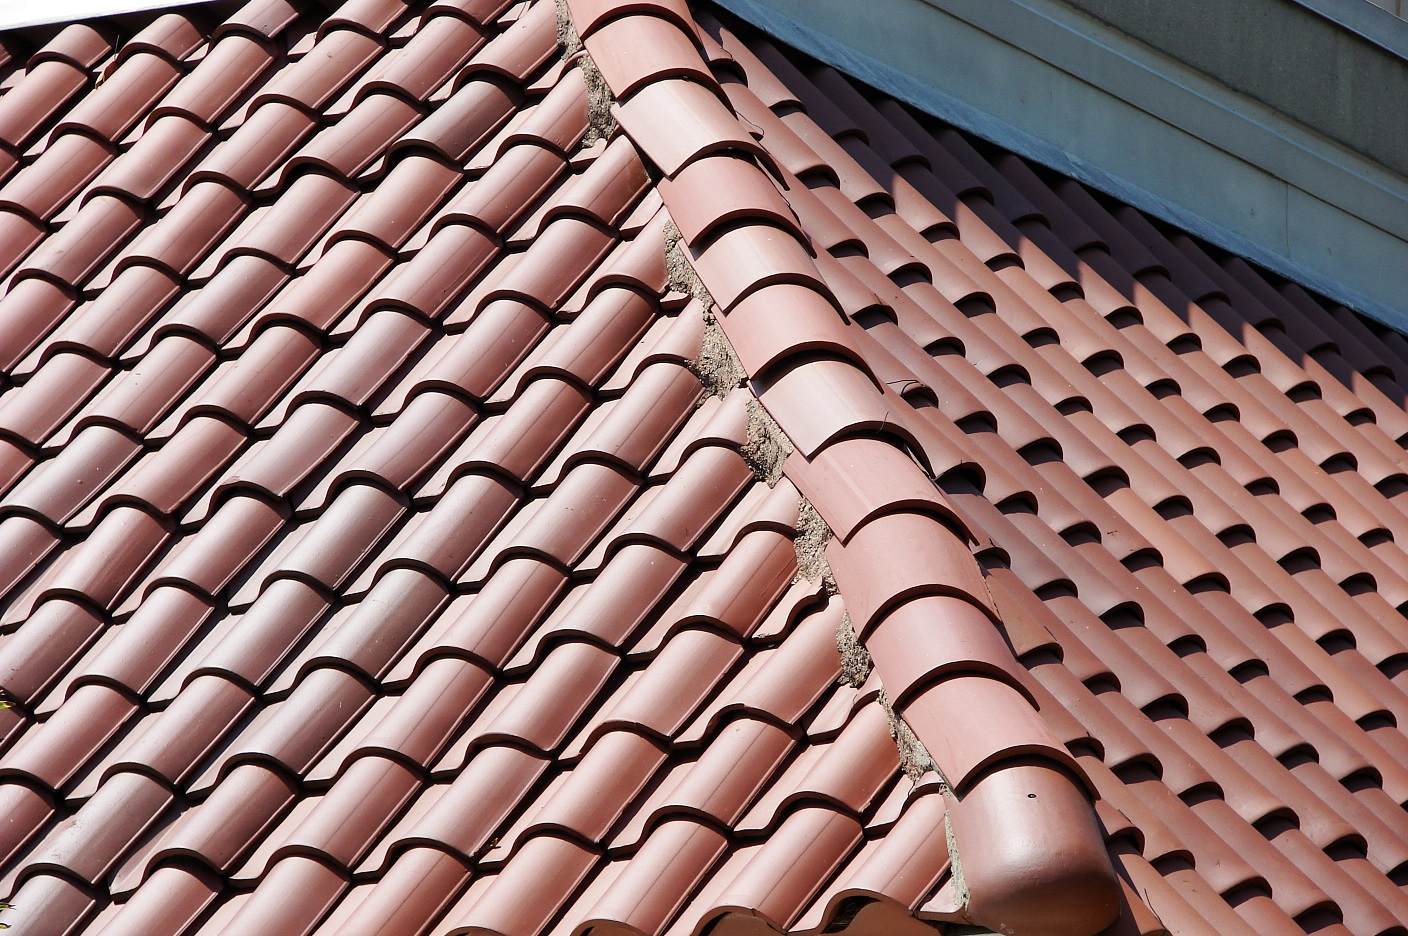 What Are the Different Styles of Tile Roofing?